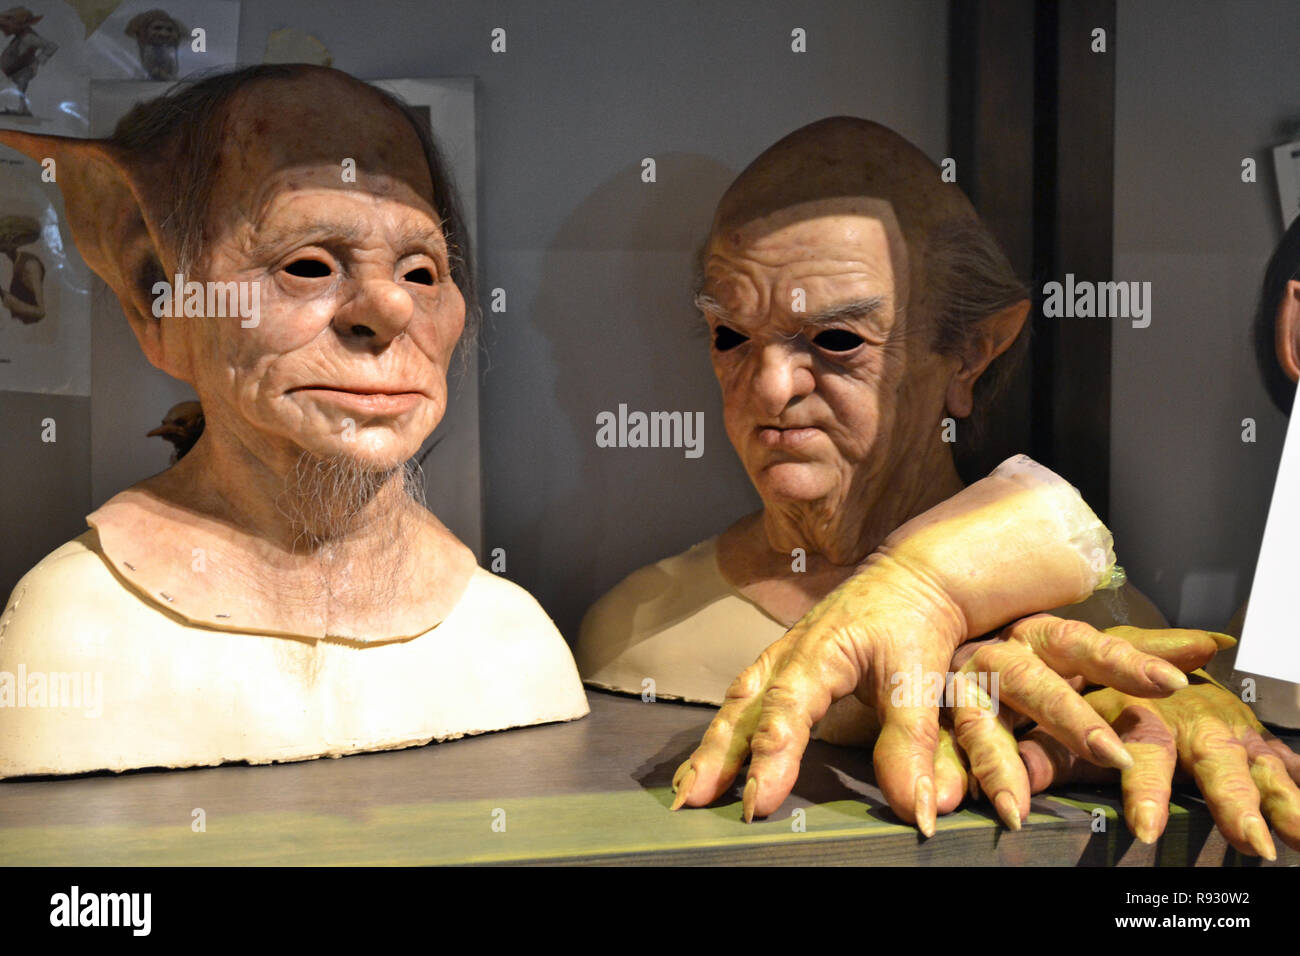 Masks of the goblin bankers at the Harry Potter Studios at Leavesden, London, UK - Stock Image